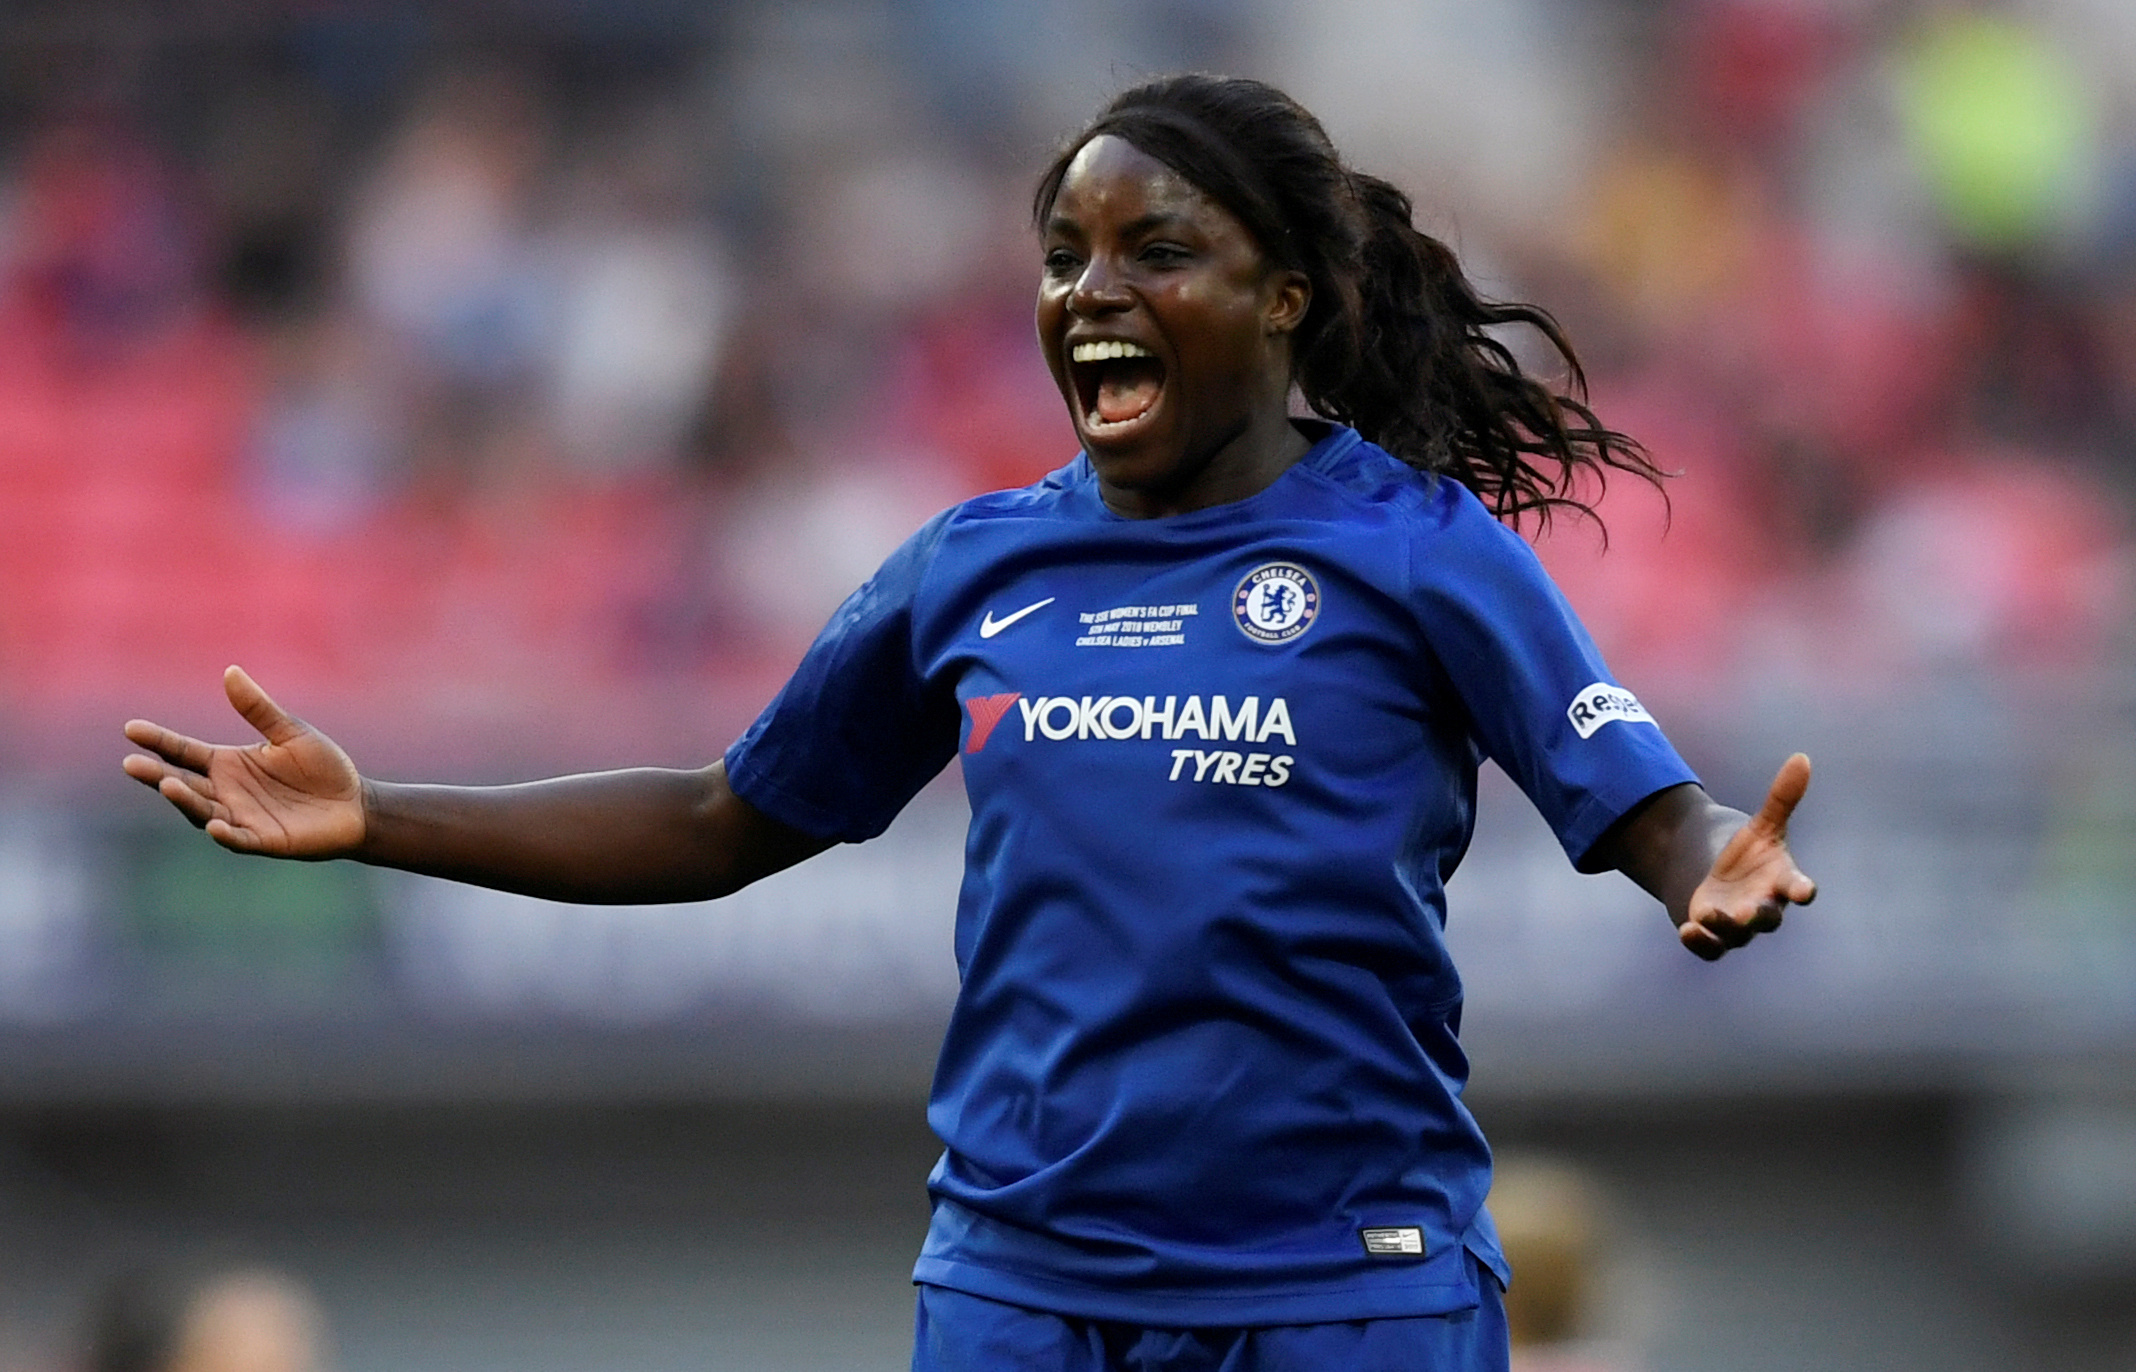 """We are still seeing a glass ceiling to a certain extent. We've gone to having great representation on the pitch... but that transition doesn't necessarily reflect when it goes off the pitch into the boardroom and even in ownership"" says former England player Eniola Aluko. (Tony O'Brien/File Photo/ REUTERS)"